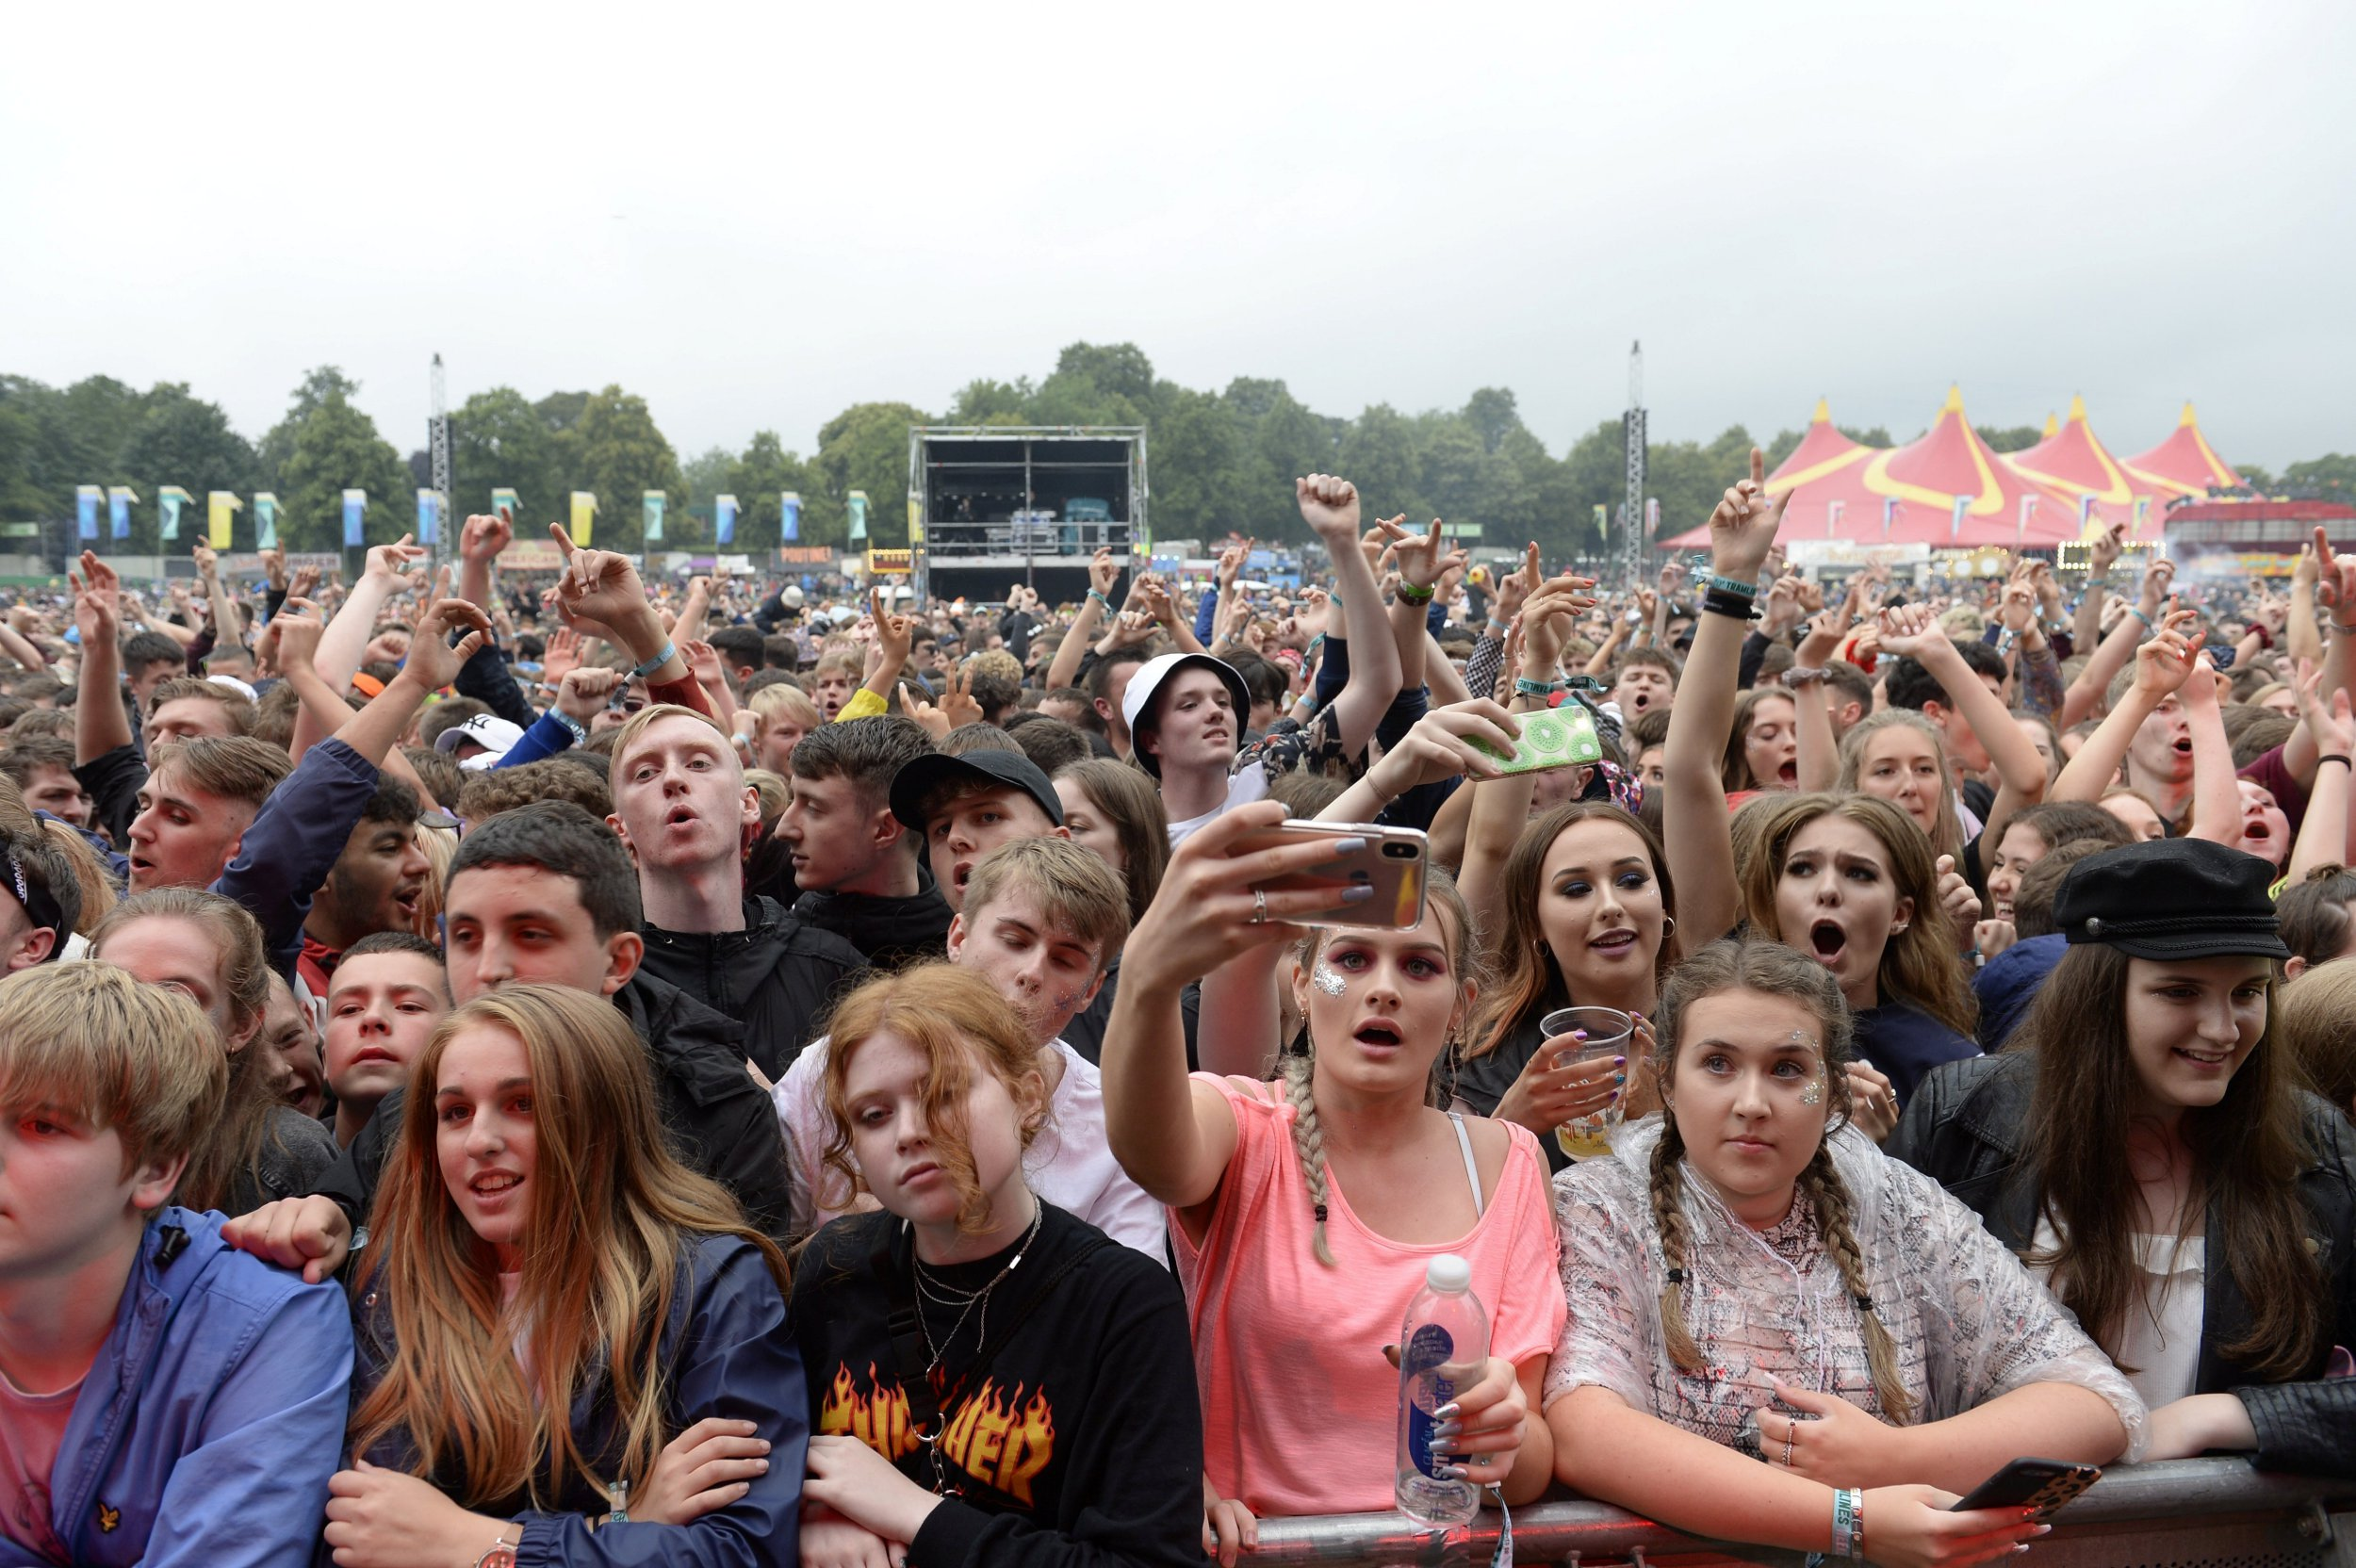 A General perspective display a throng during a categorical Stage during Tramlines in Sheffield this weekend. See SWNS story SWLEquake; A heading scientist has suggested that revellers dancing during a renouned song festival caused teenager EARTHQUAKES.Seismologist Paul Denton, plan personality during a British Geological Survey, available seismic tremors during on a initial night of a Tramlines Festival on Friday, Jul 19. He pronounced a earthquakes were picked adult during a title set by indie rockers, Two Door Cinema Club that kicked off a three-day festival. The vibrations were caused by a throng dancing to a band's biggest hits. The festival, initial hold in 2009, saw some-more than 70 artists perform over 4 stages in front of a insane throng of around 100,000 over 3 nights in Sheffield, South Yorks.